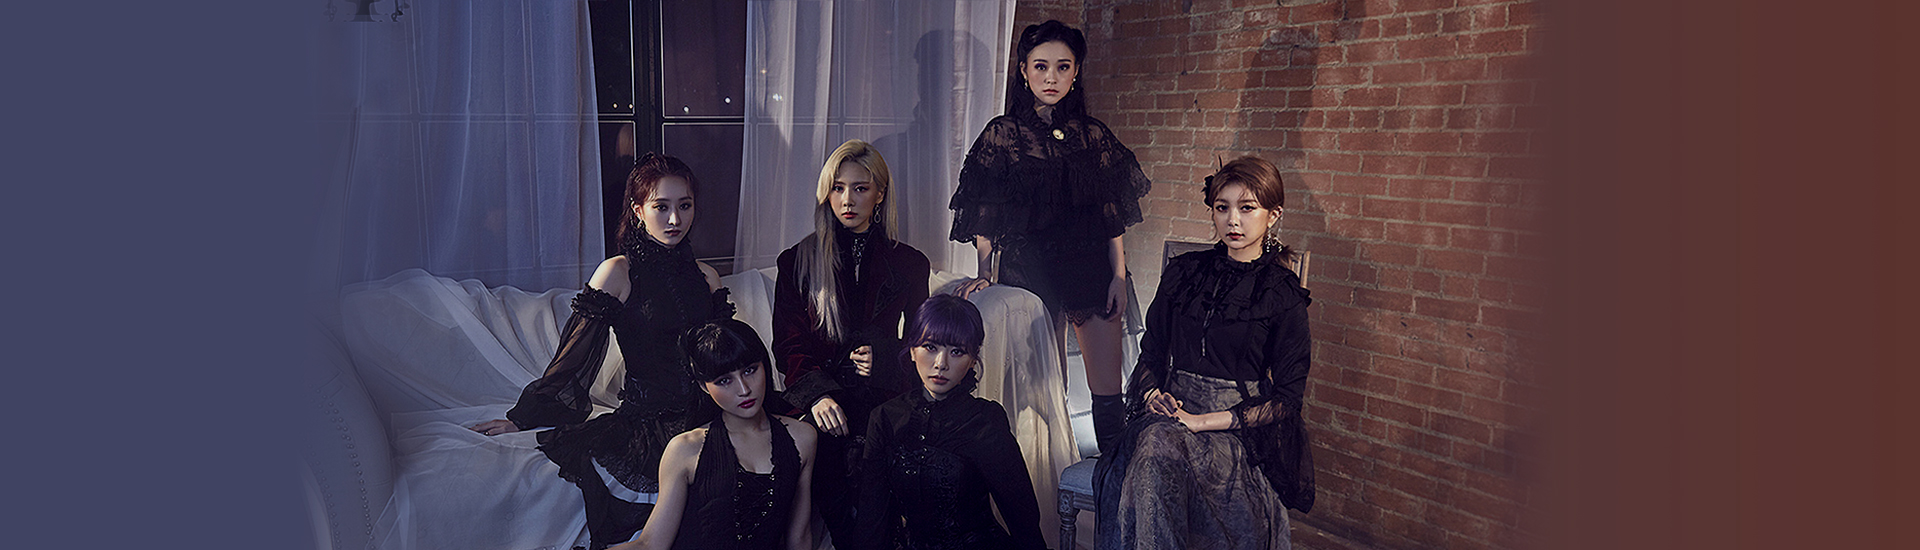 DREAMCATCHER - CONCERT GLOBAL STREAMING INTO THE NIGHT & DYSTOPIA